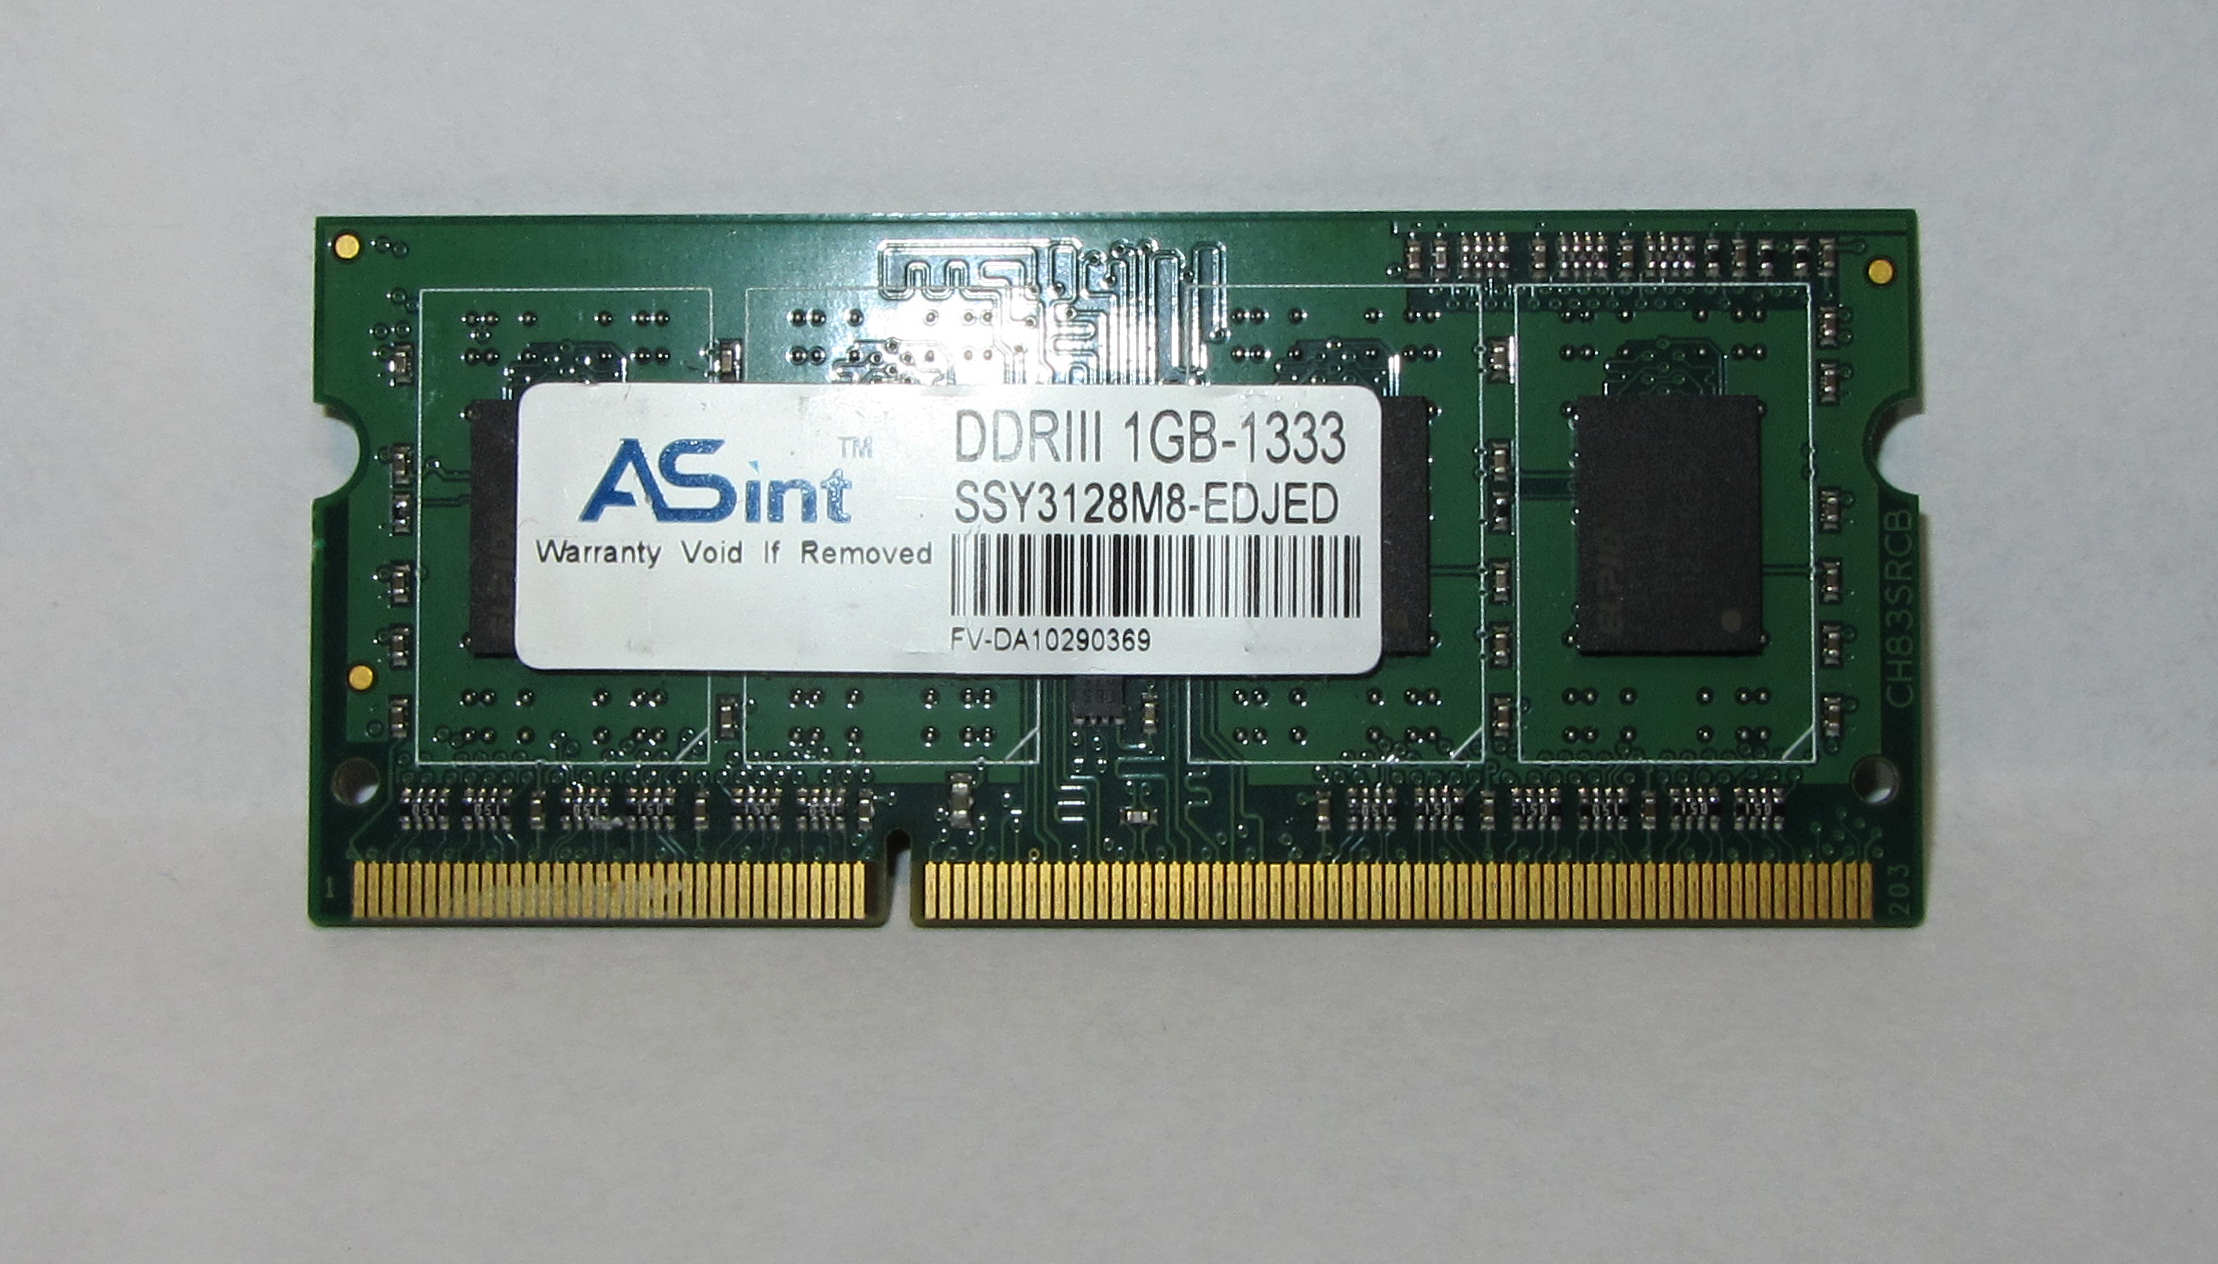 ASUS 1GB DDR3 1333MHz, SSY3128M8-EDJED